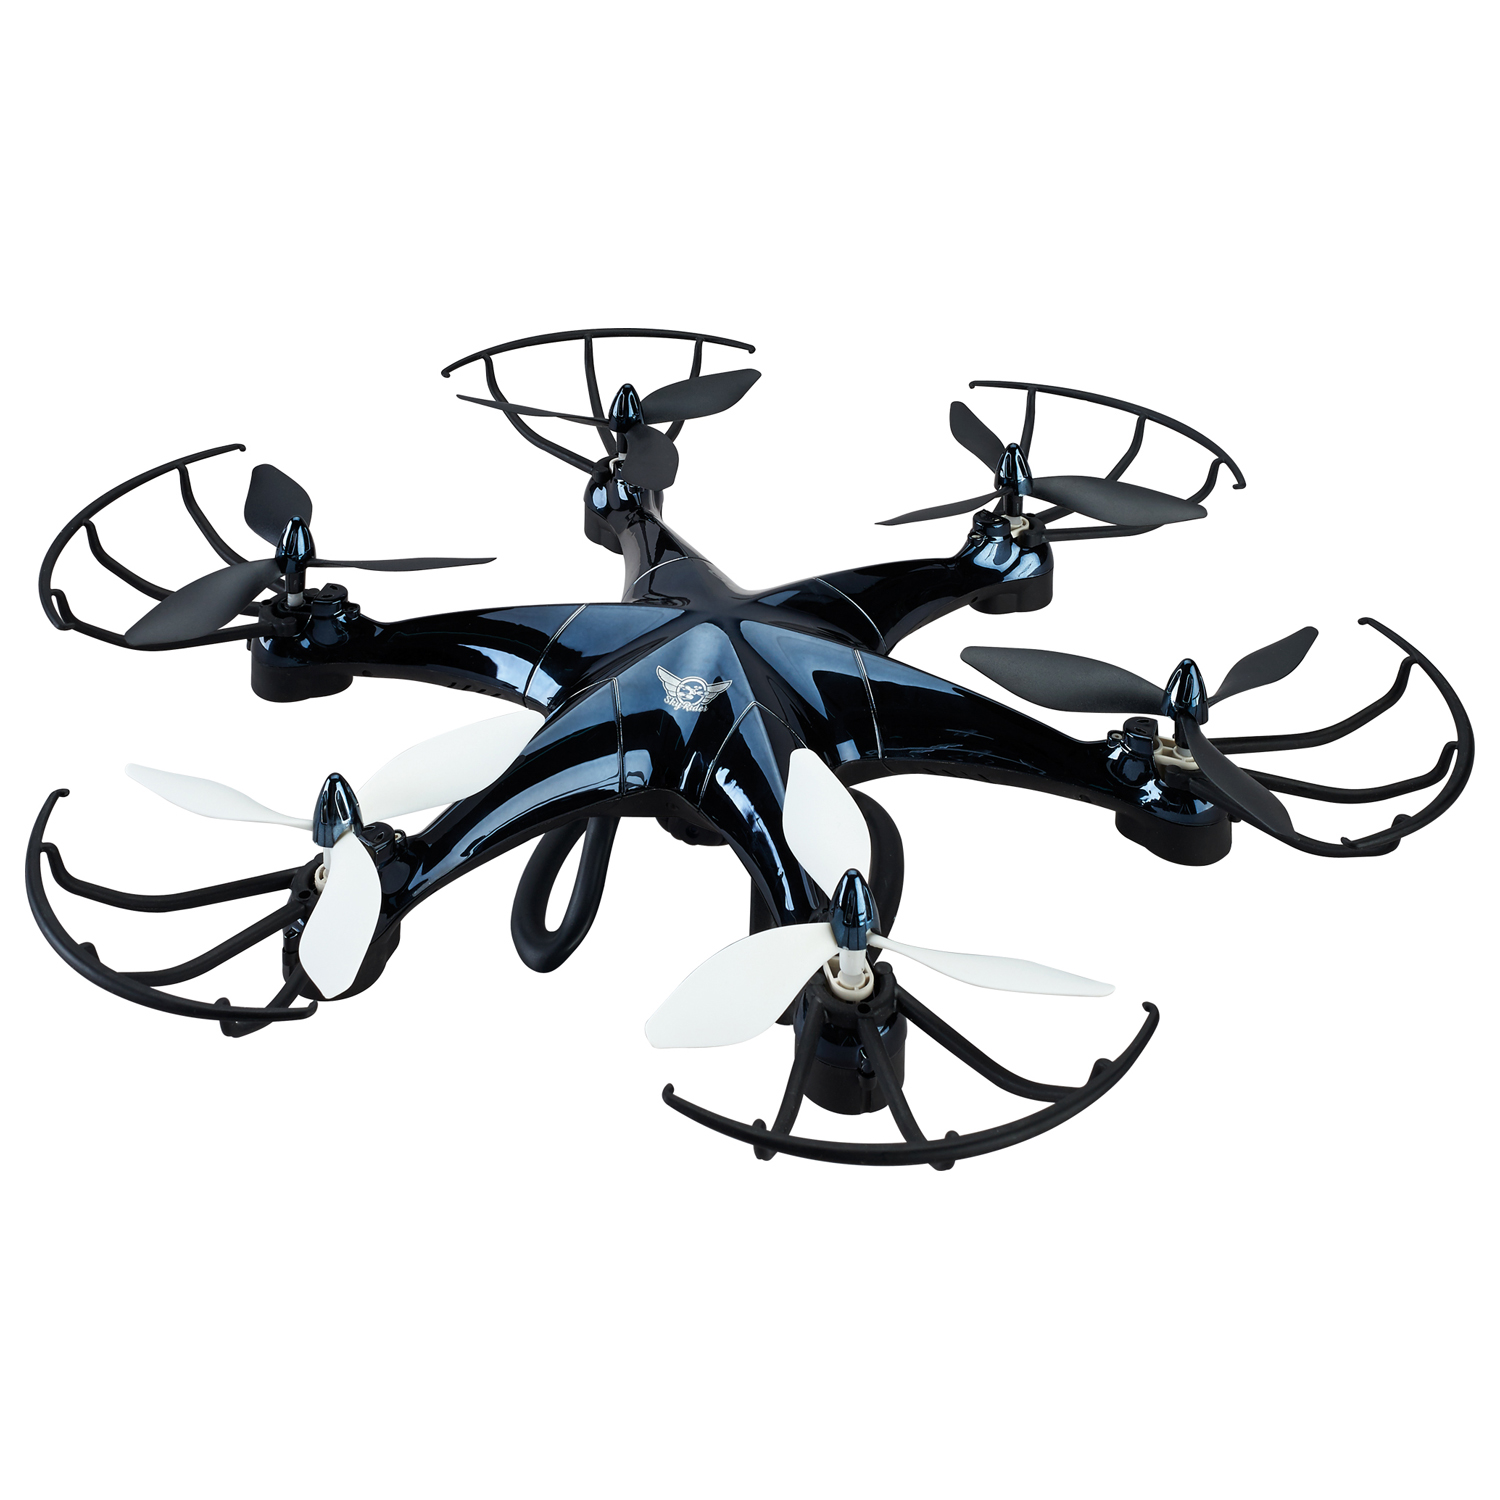 Sky Rider Eagle Pro 6-Rotor Drone with Wi-Fi Camera, DRW676B by GPX